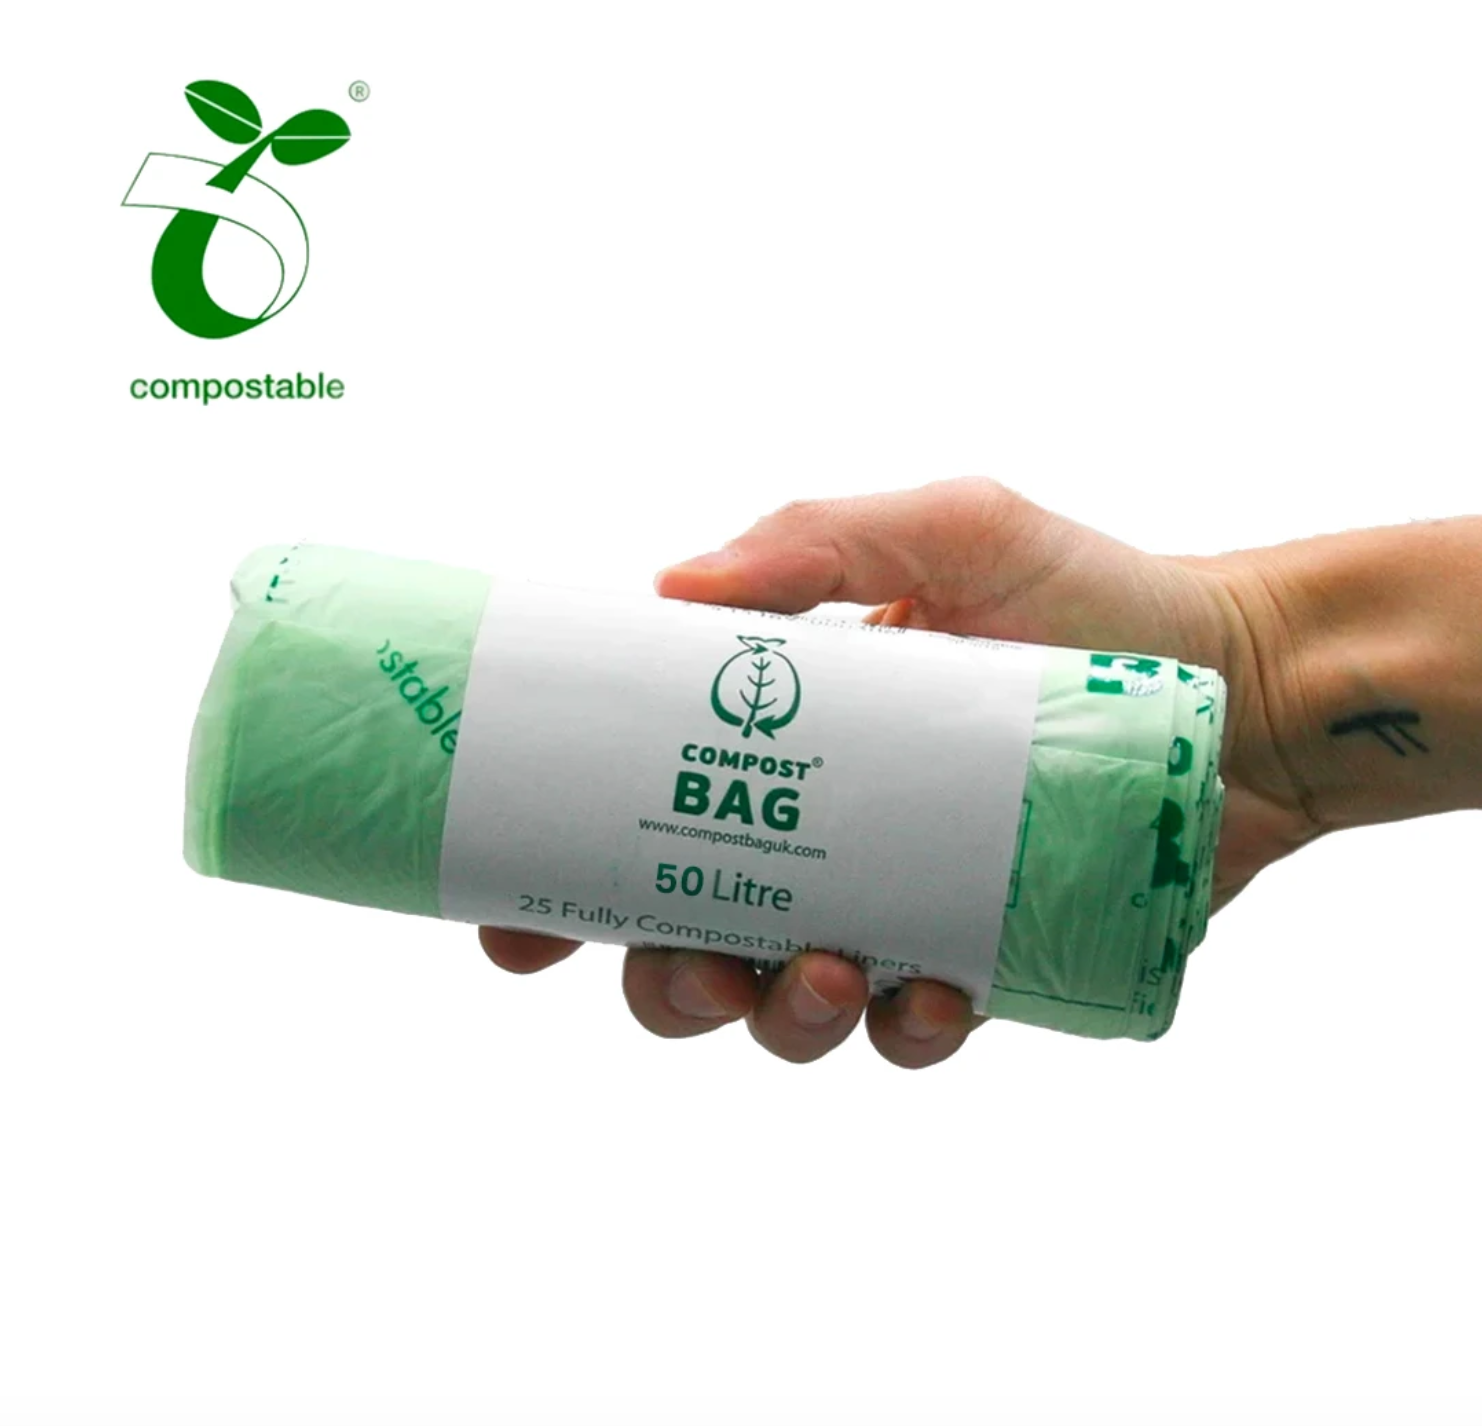 50L Bin Liners (Compostable Biodegradable)